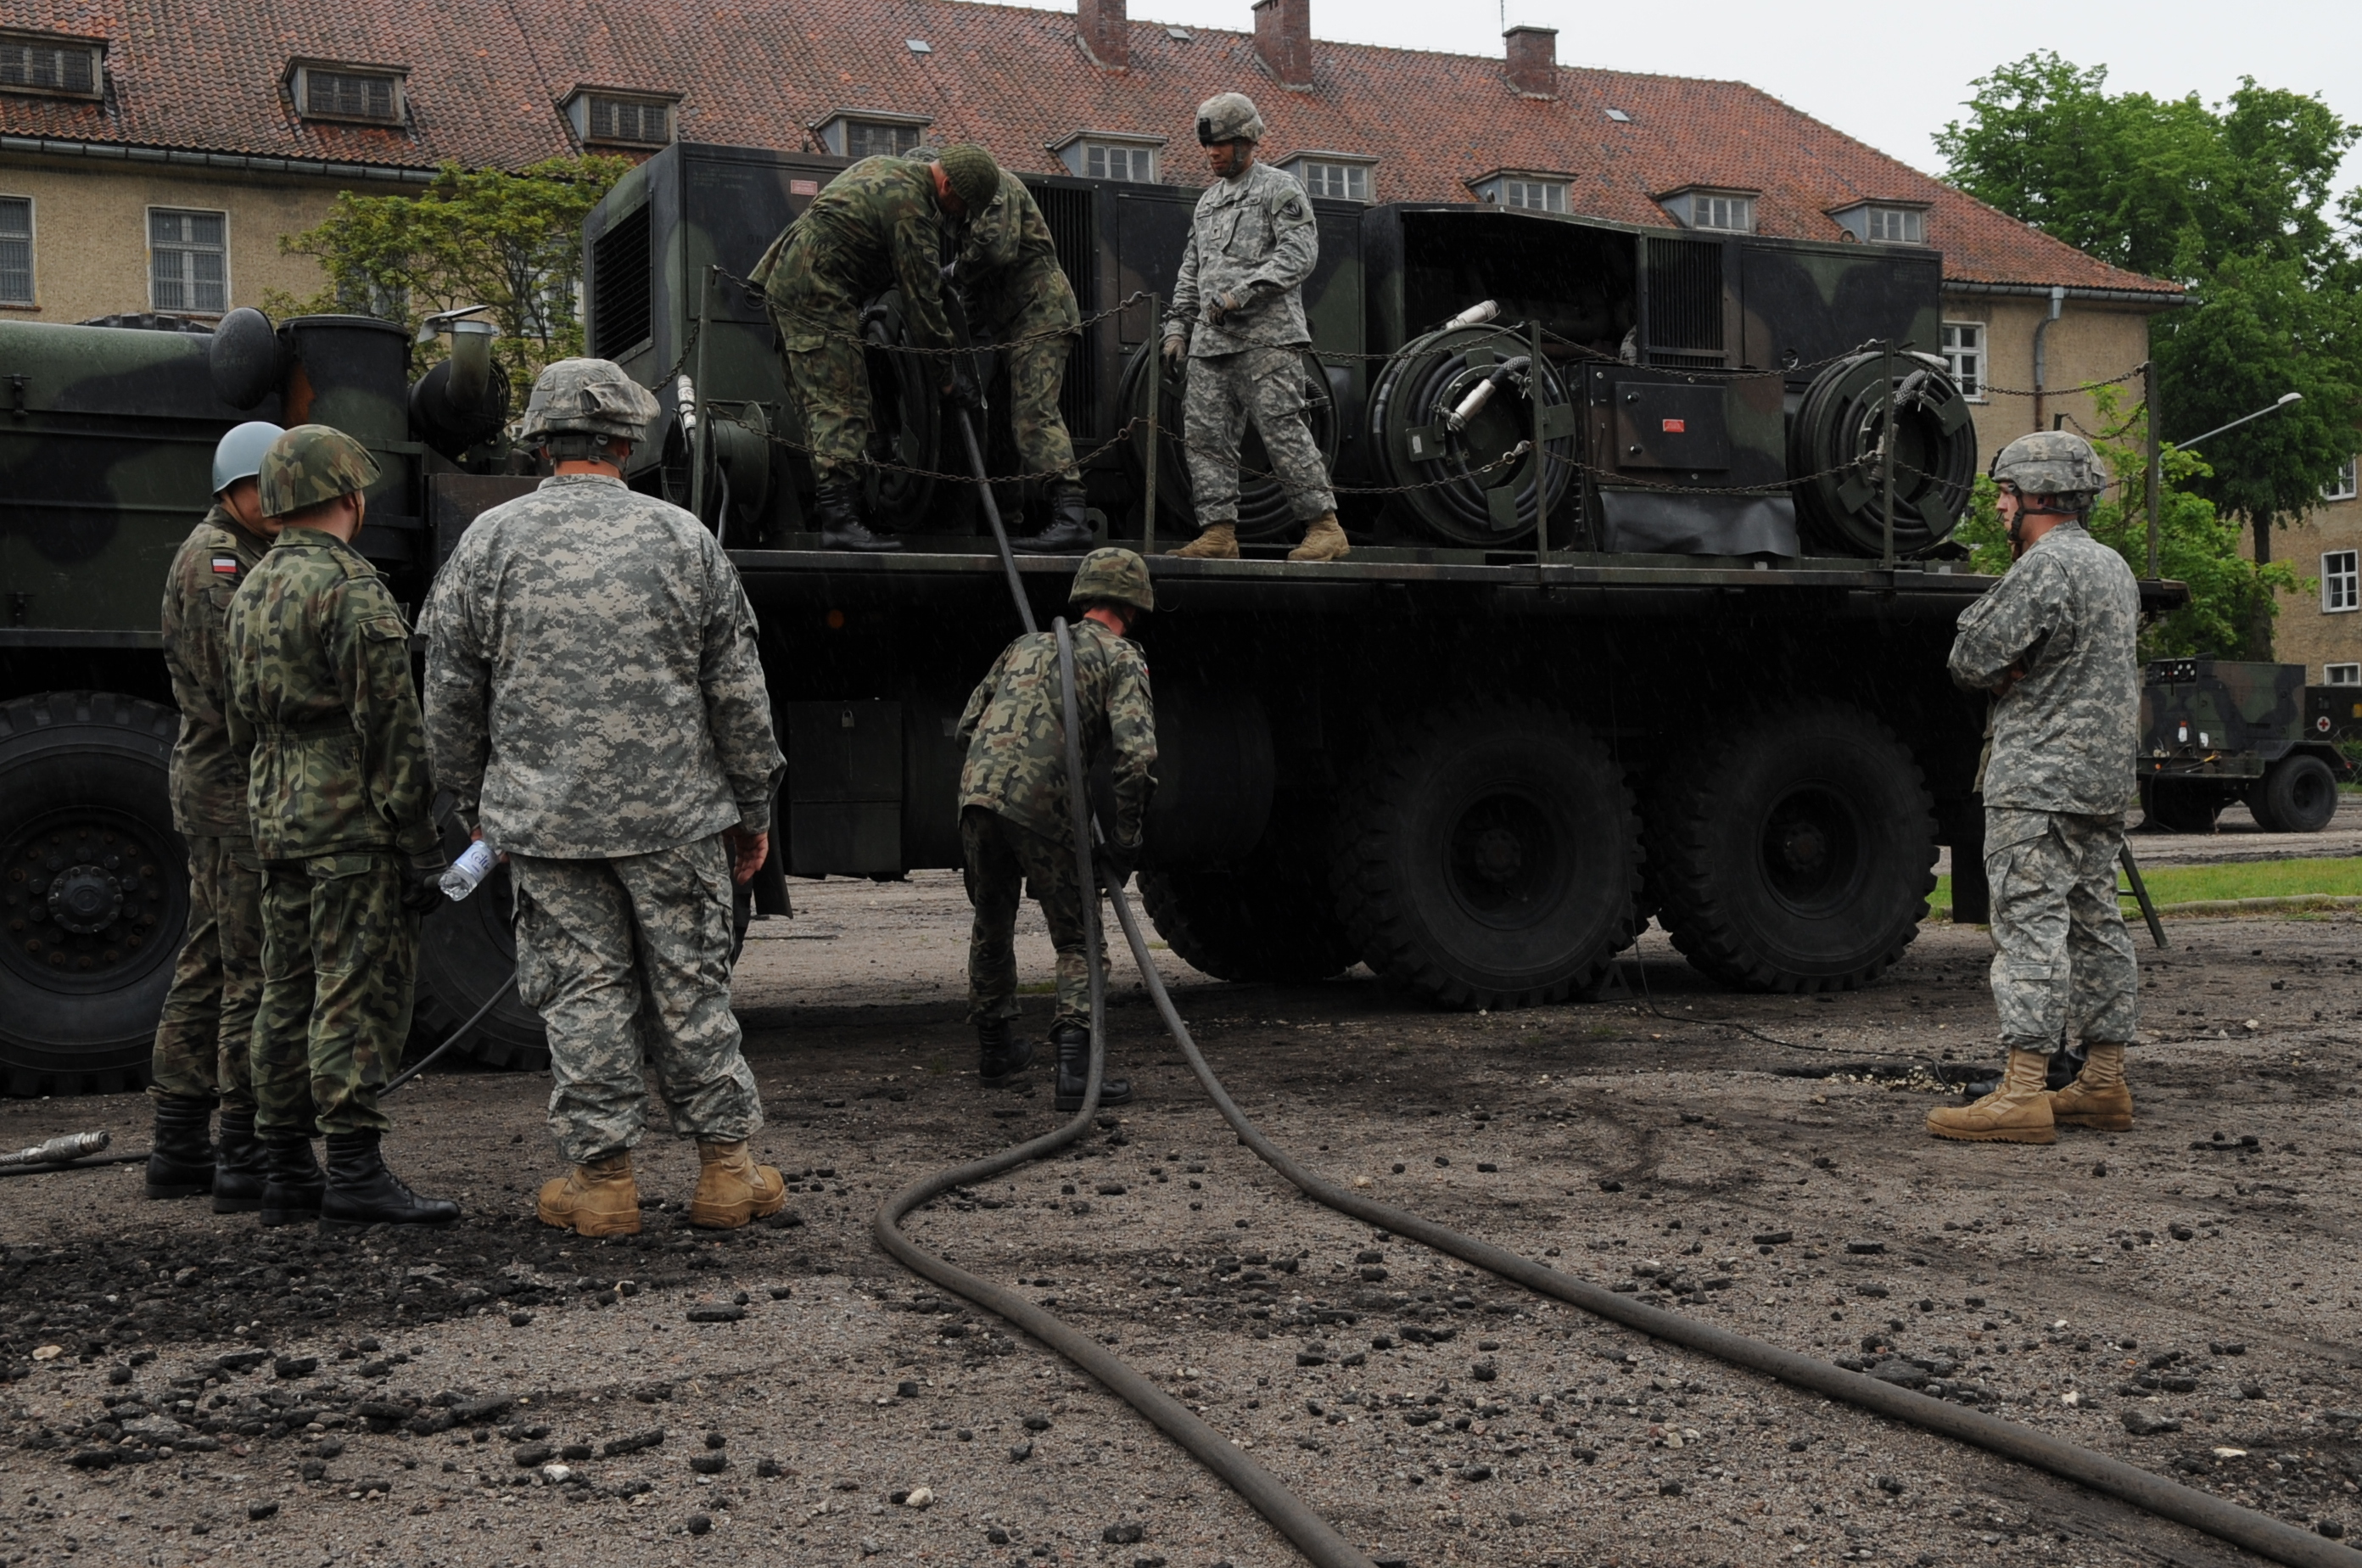 US Army soldiers familiarise members of the Polish military on how to conduct preventive maintenance on the Patriot missile system in Morag, Poland, in 2010. (US Army photo)